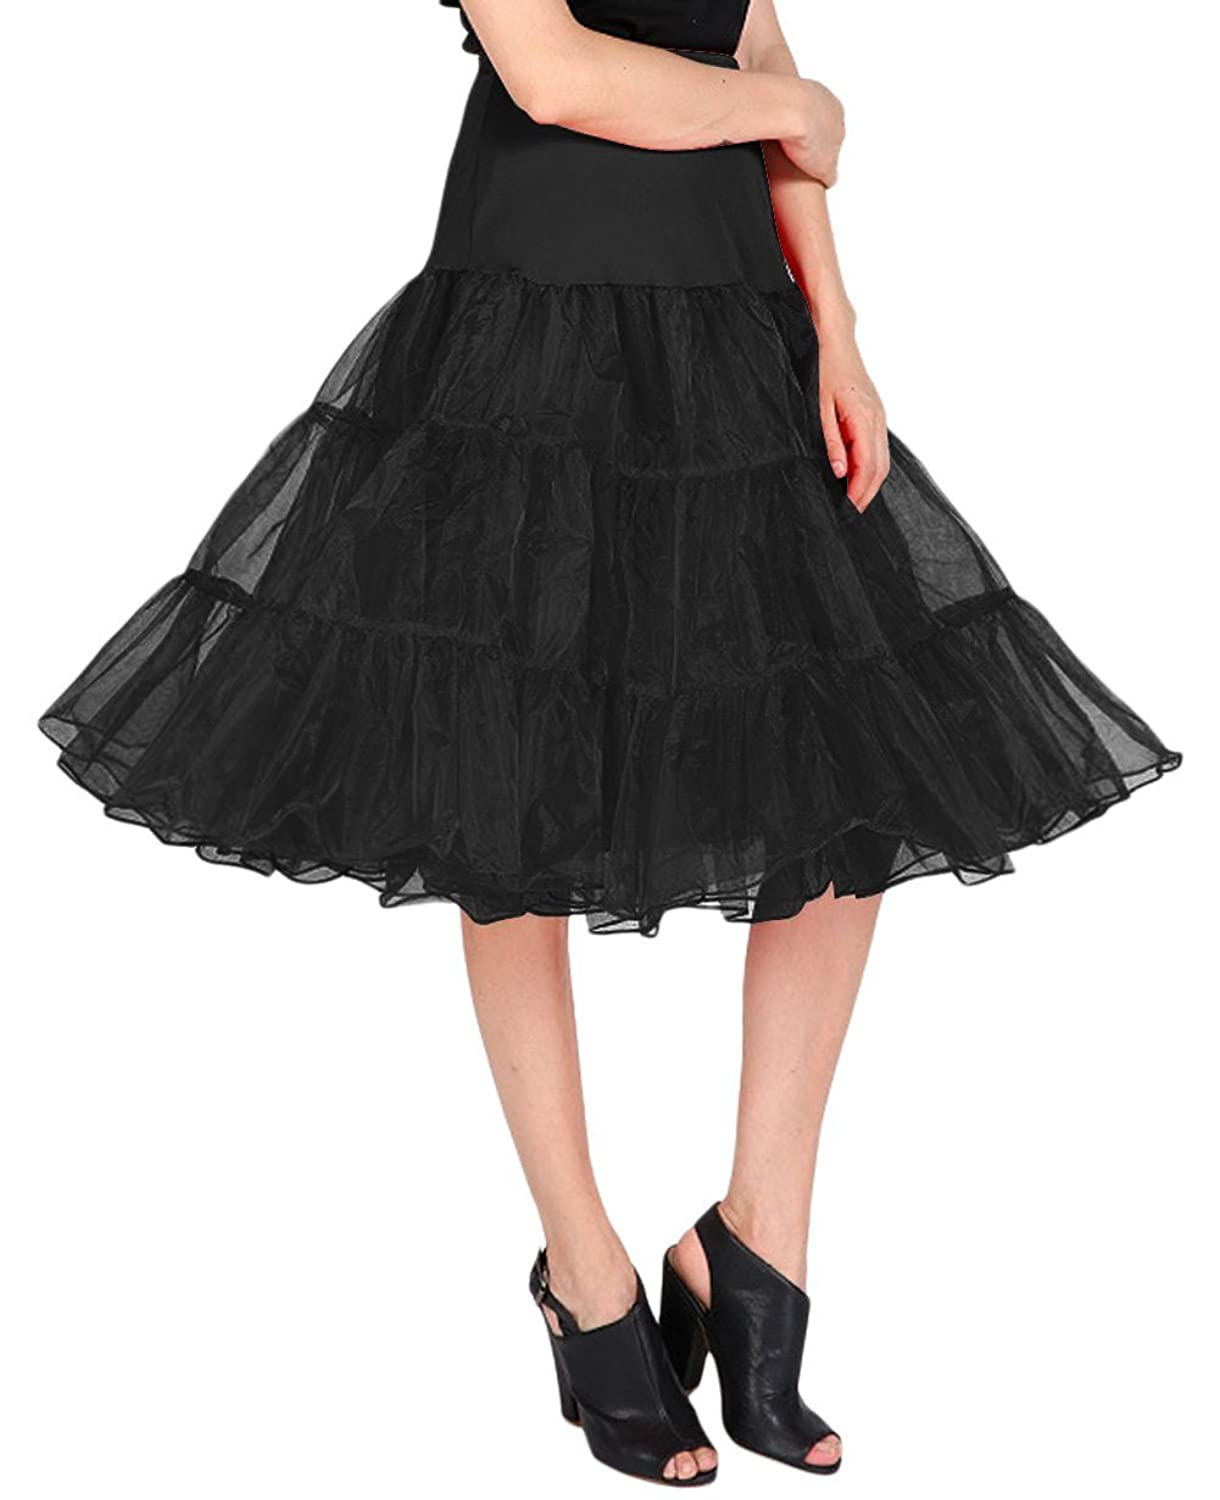 1950s Costumes- Poodle Skirts, Grease, Monroe, Pin Up, I Love Lucy Dressystar 50s 26 Length Tutu $15.00 AT vintagedancer.com